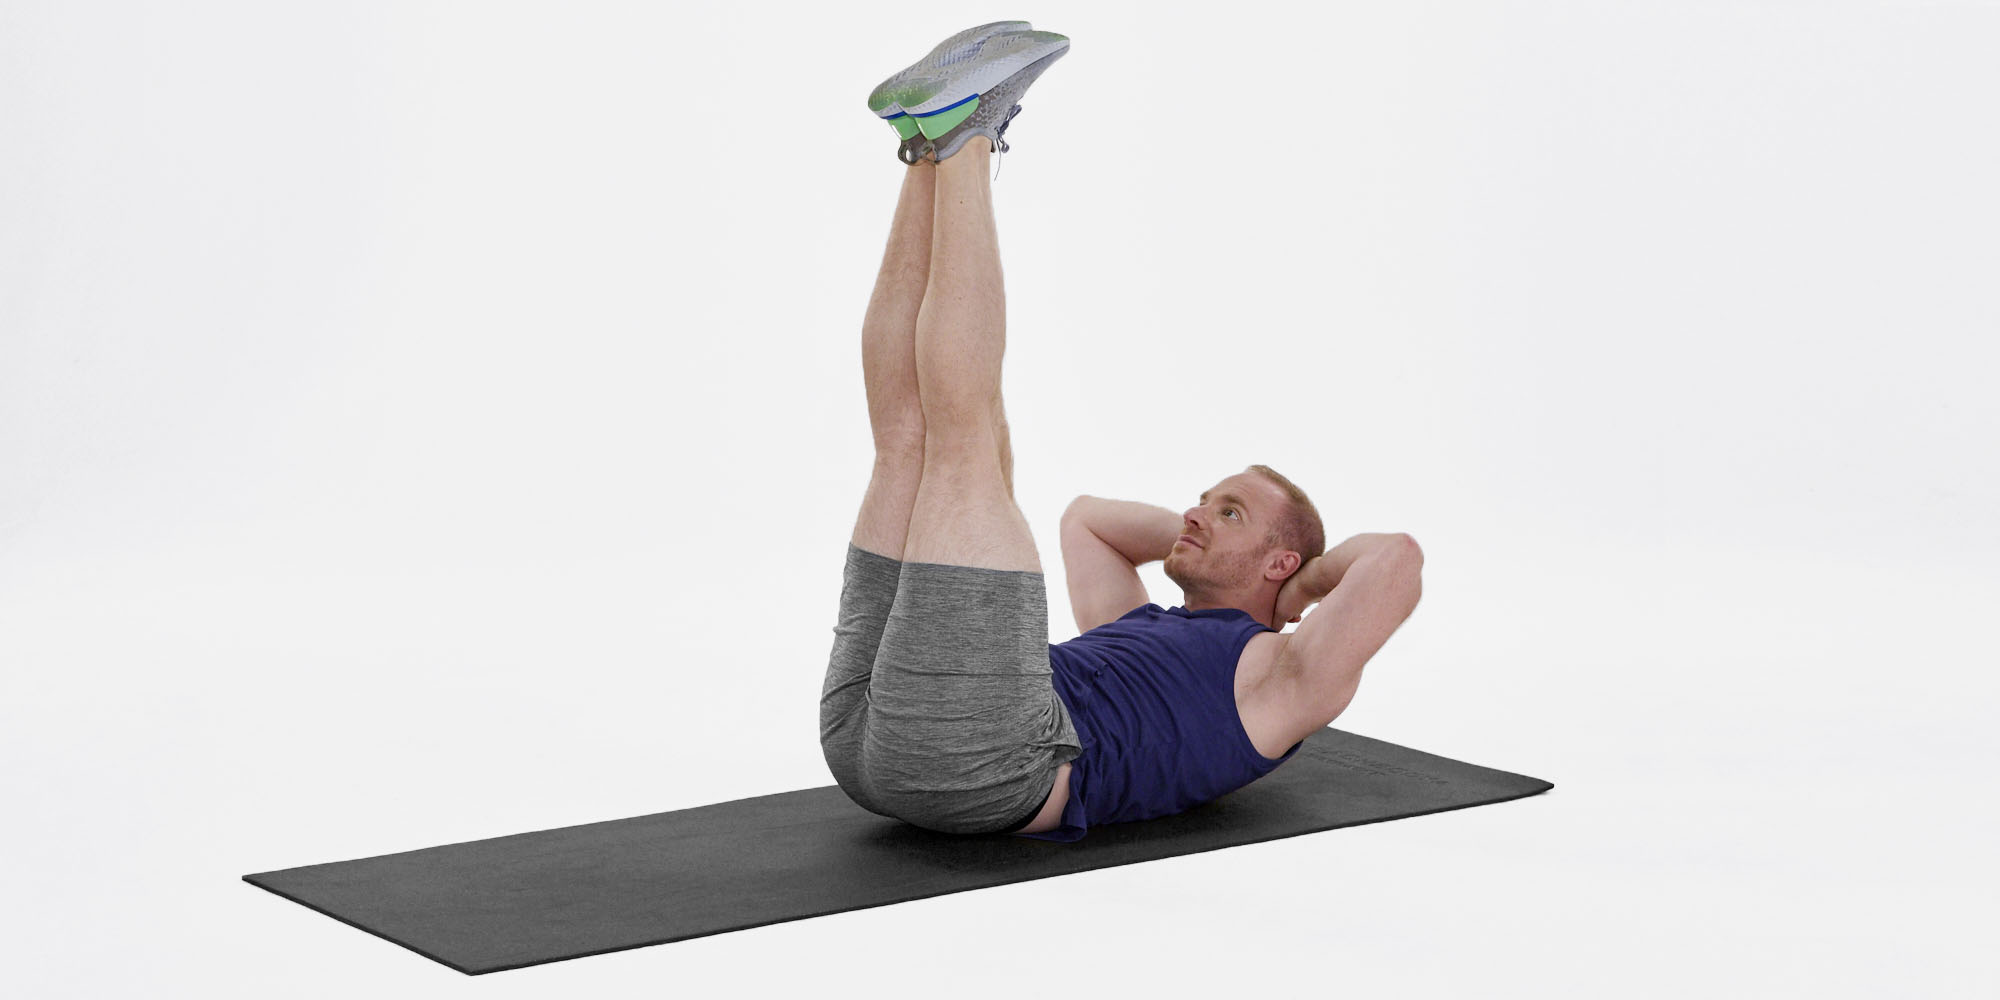 How to Do Vertical Leg Crunches